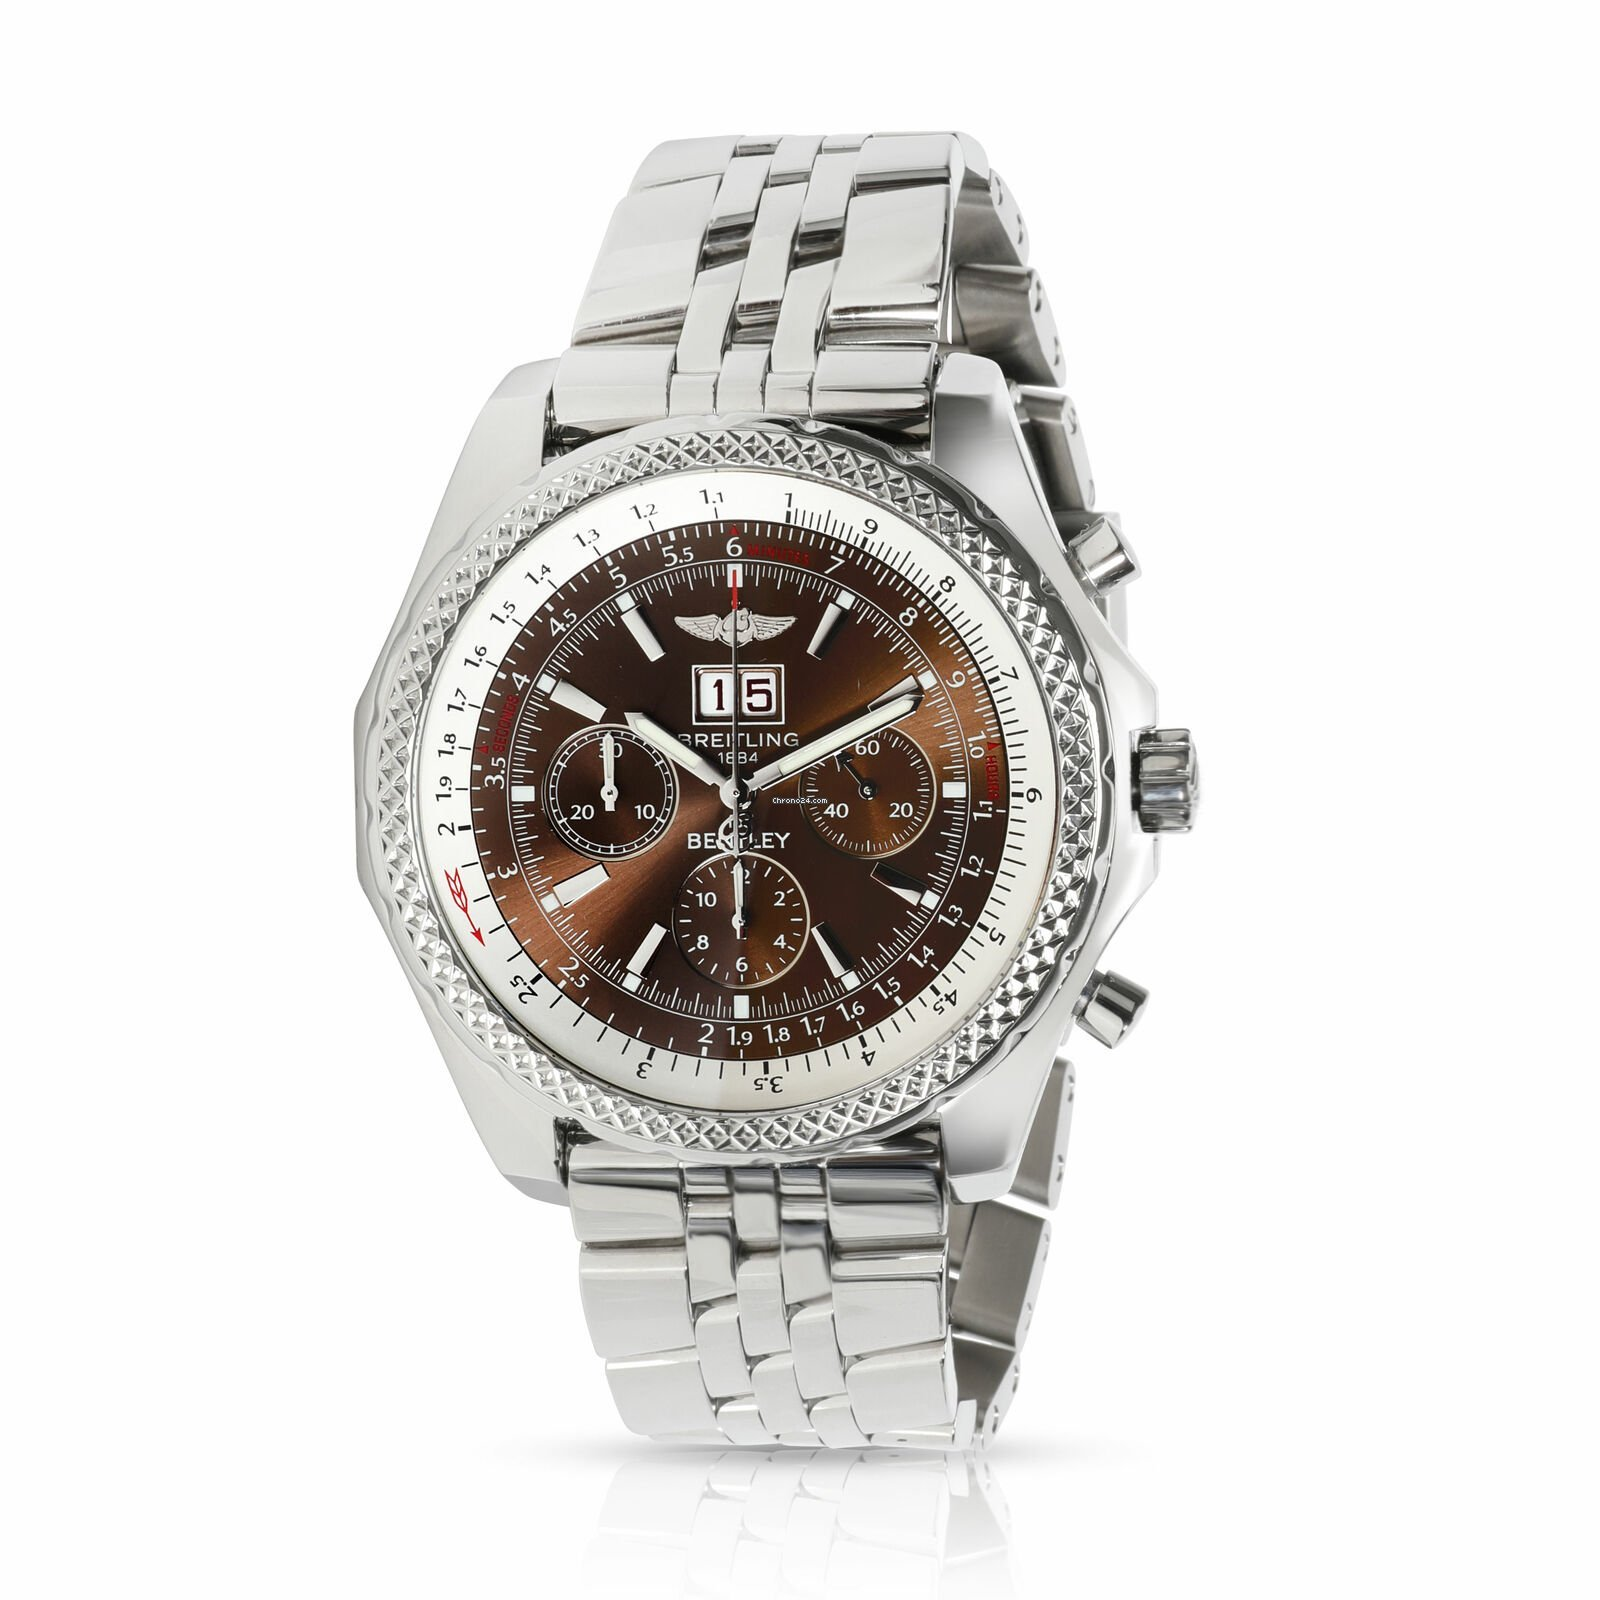 Breitling Bentley 6 75 A4436212 Q504 Men S Watch In Stainless For S 7 796 For Sale From A Trusted Seller On Chrono24